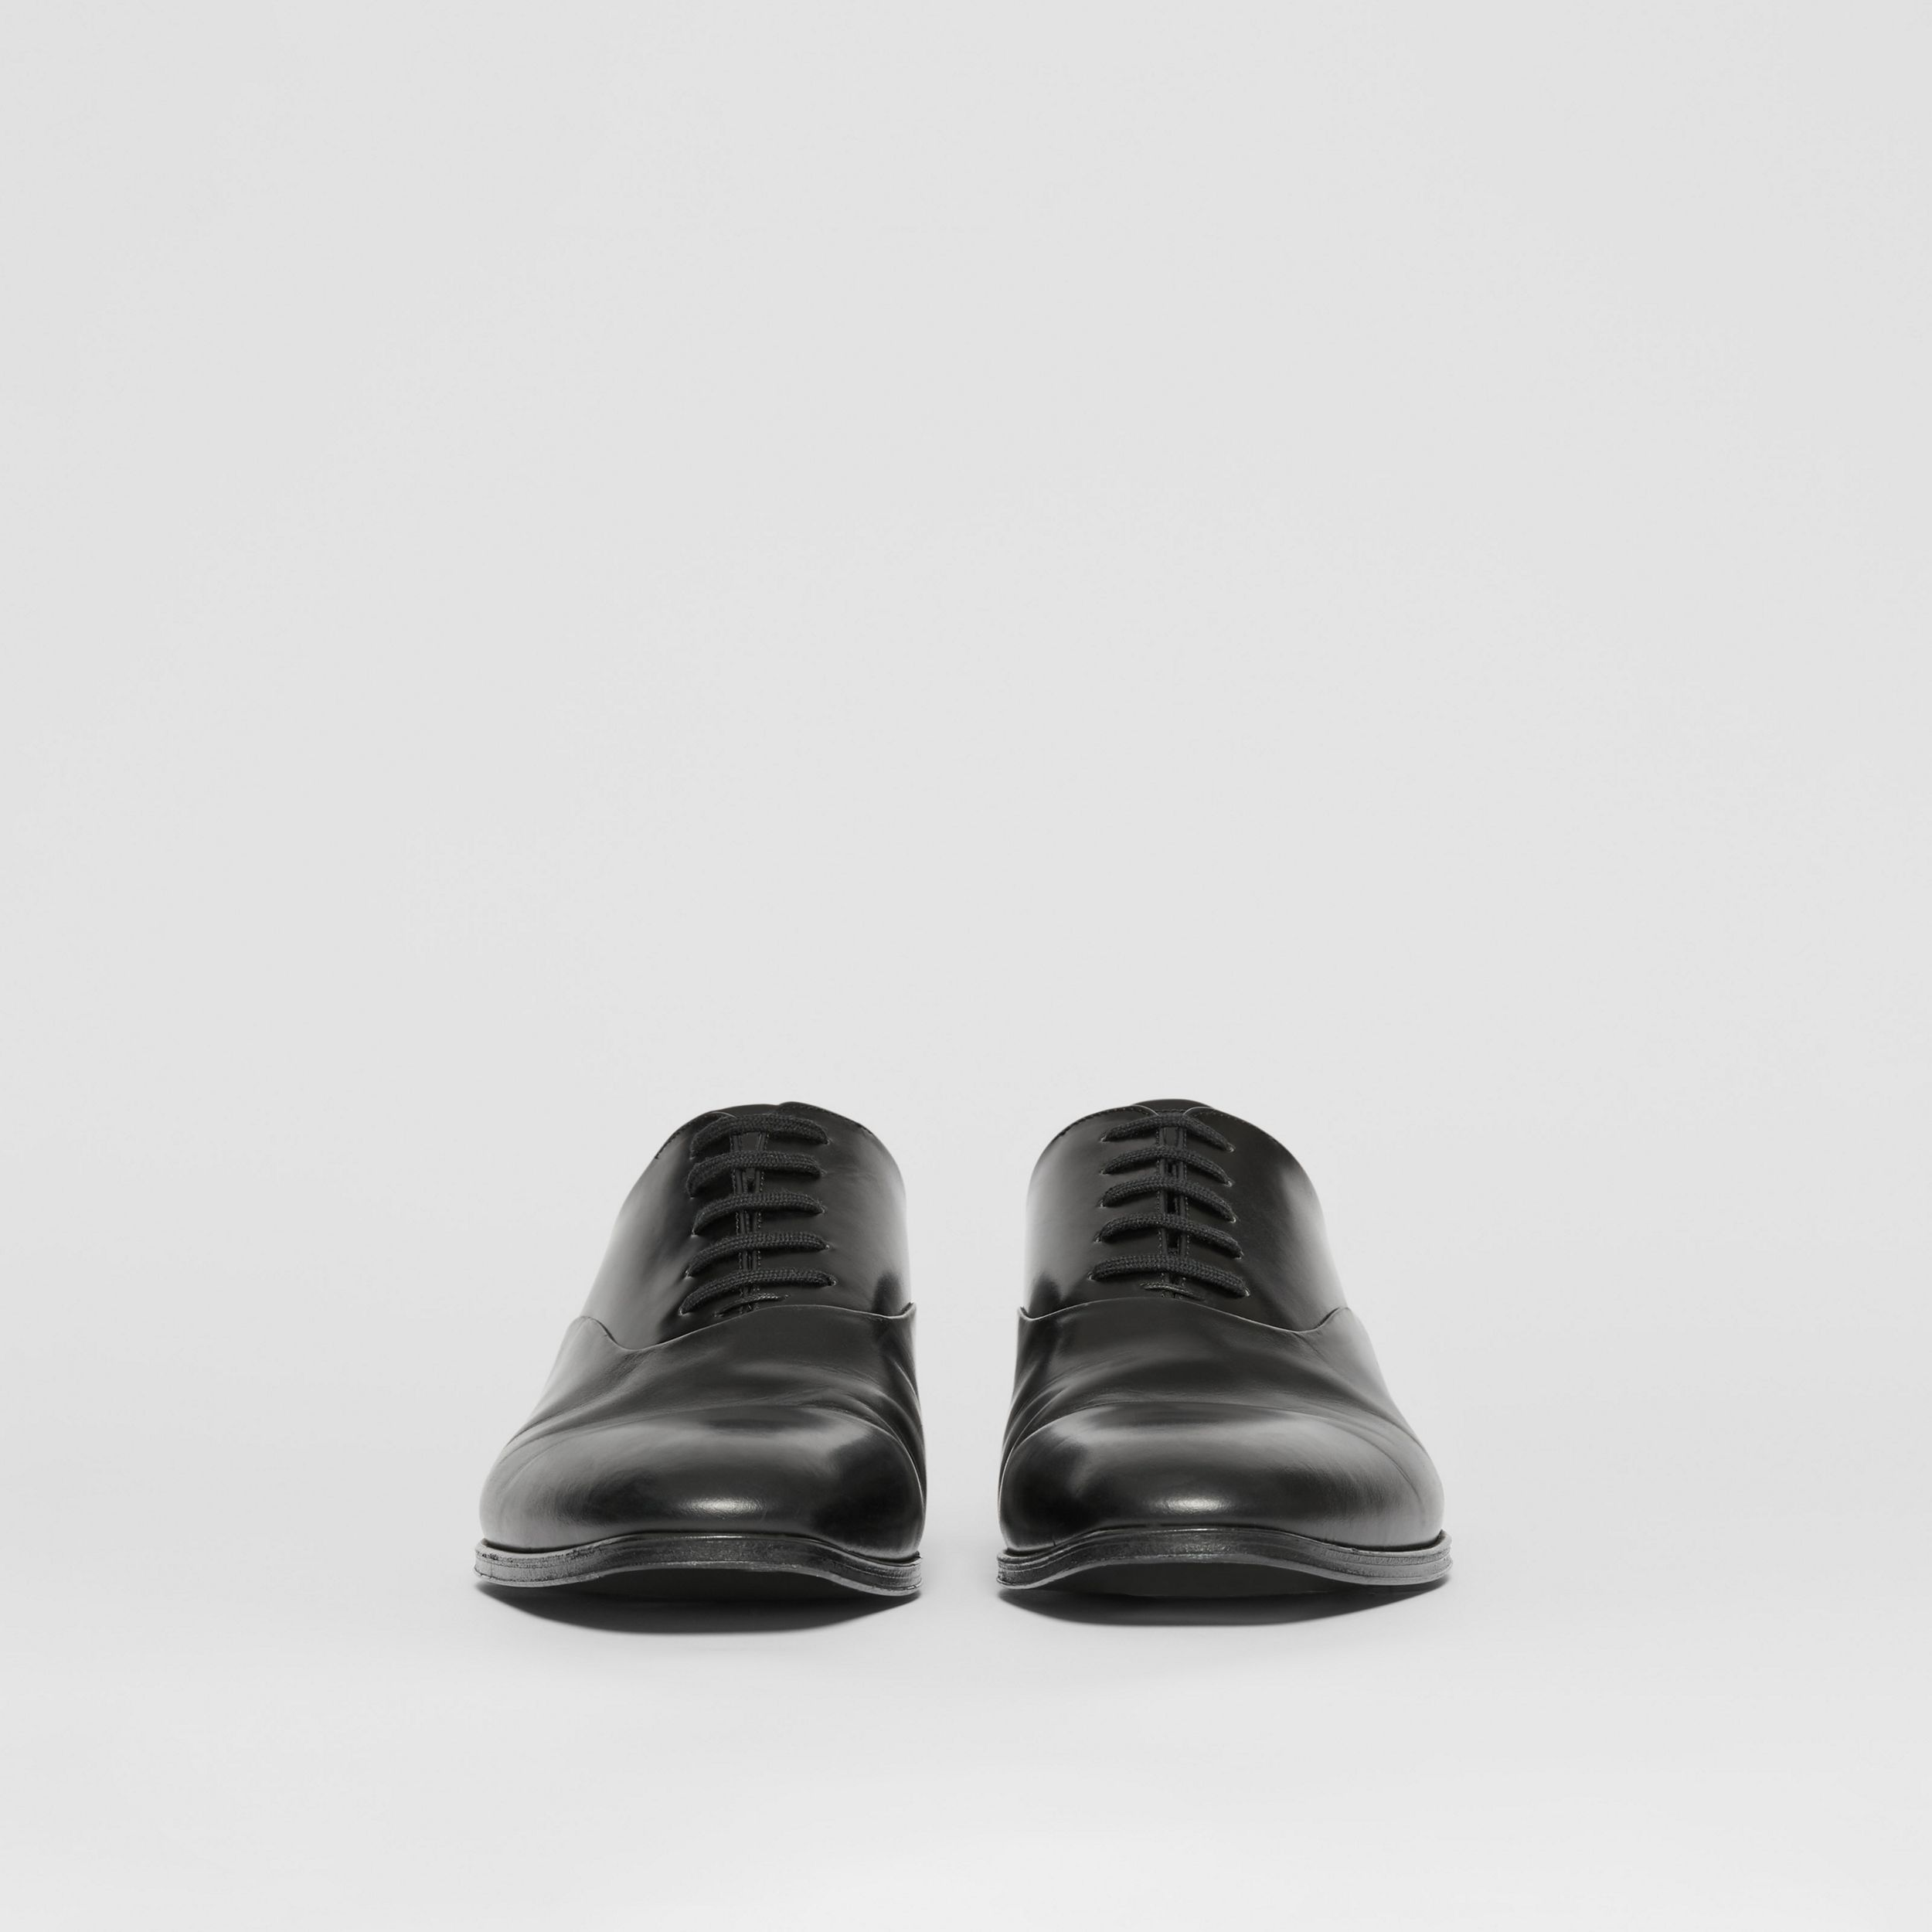 Leather Oxford Shoes in Black - Men | Burberry - 4